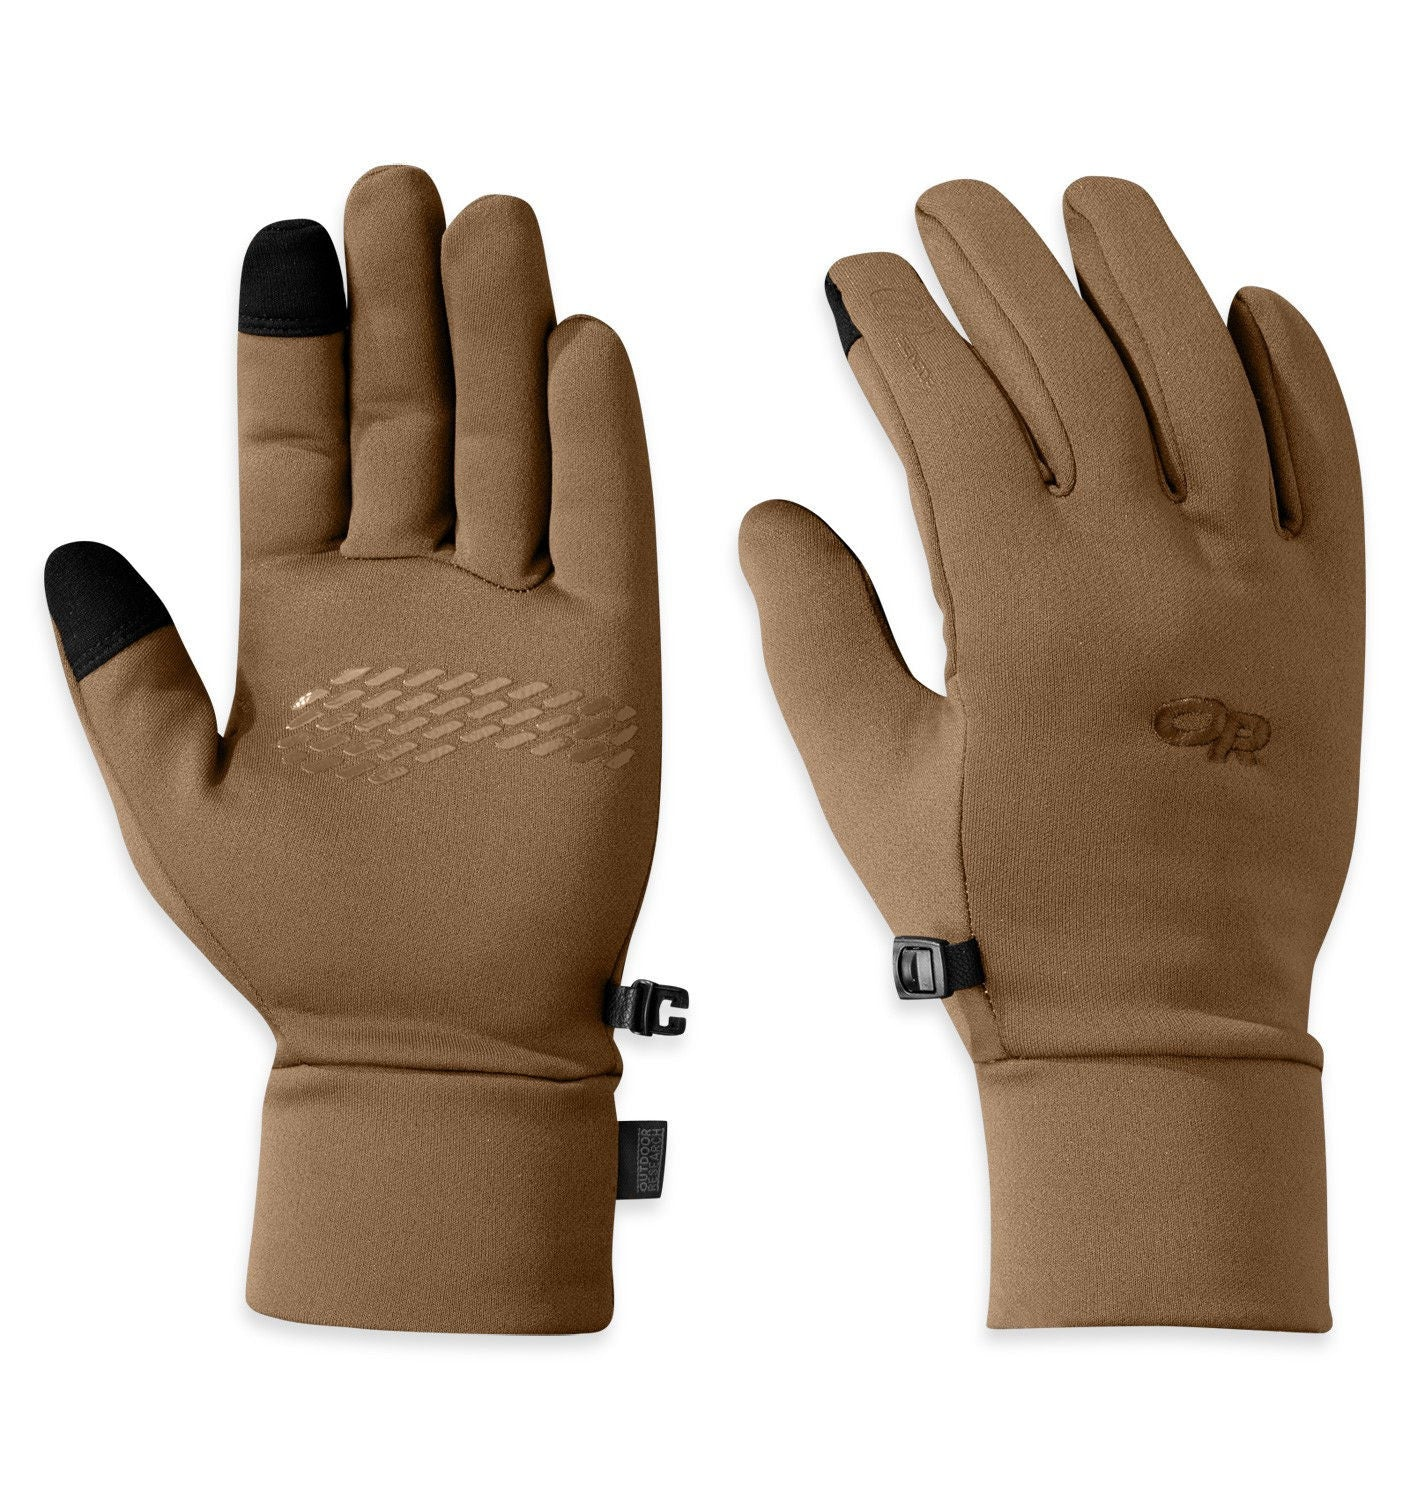 OUTDOOR RESEARCH 70603-014 Men's PL 100 Coyote Sensor Gloves